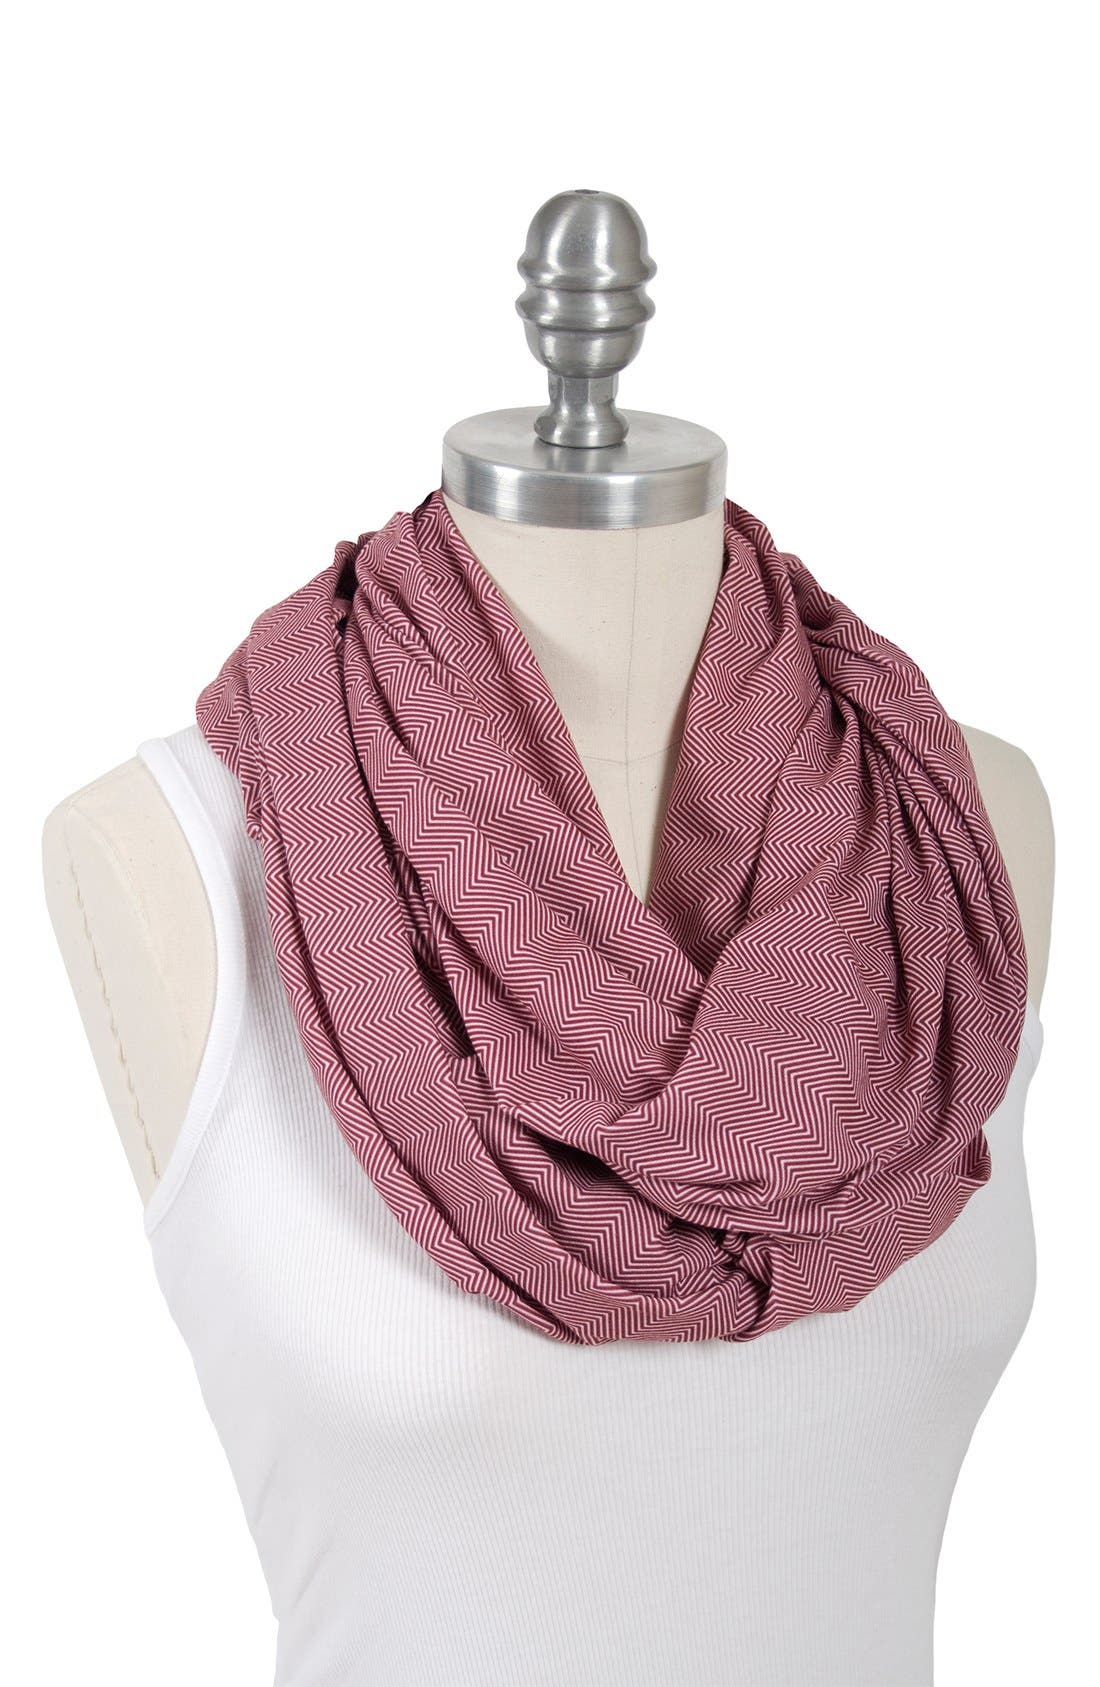 Infinity Nursing Scarf,                             Alternate thumbnail 2, color,                             601